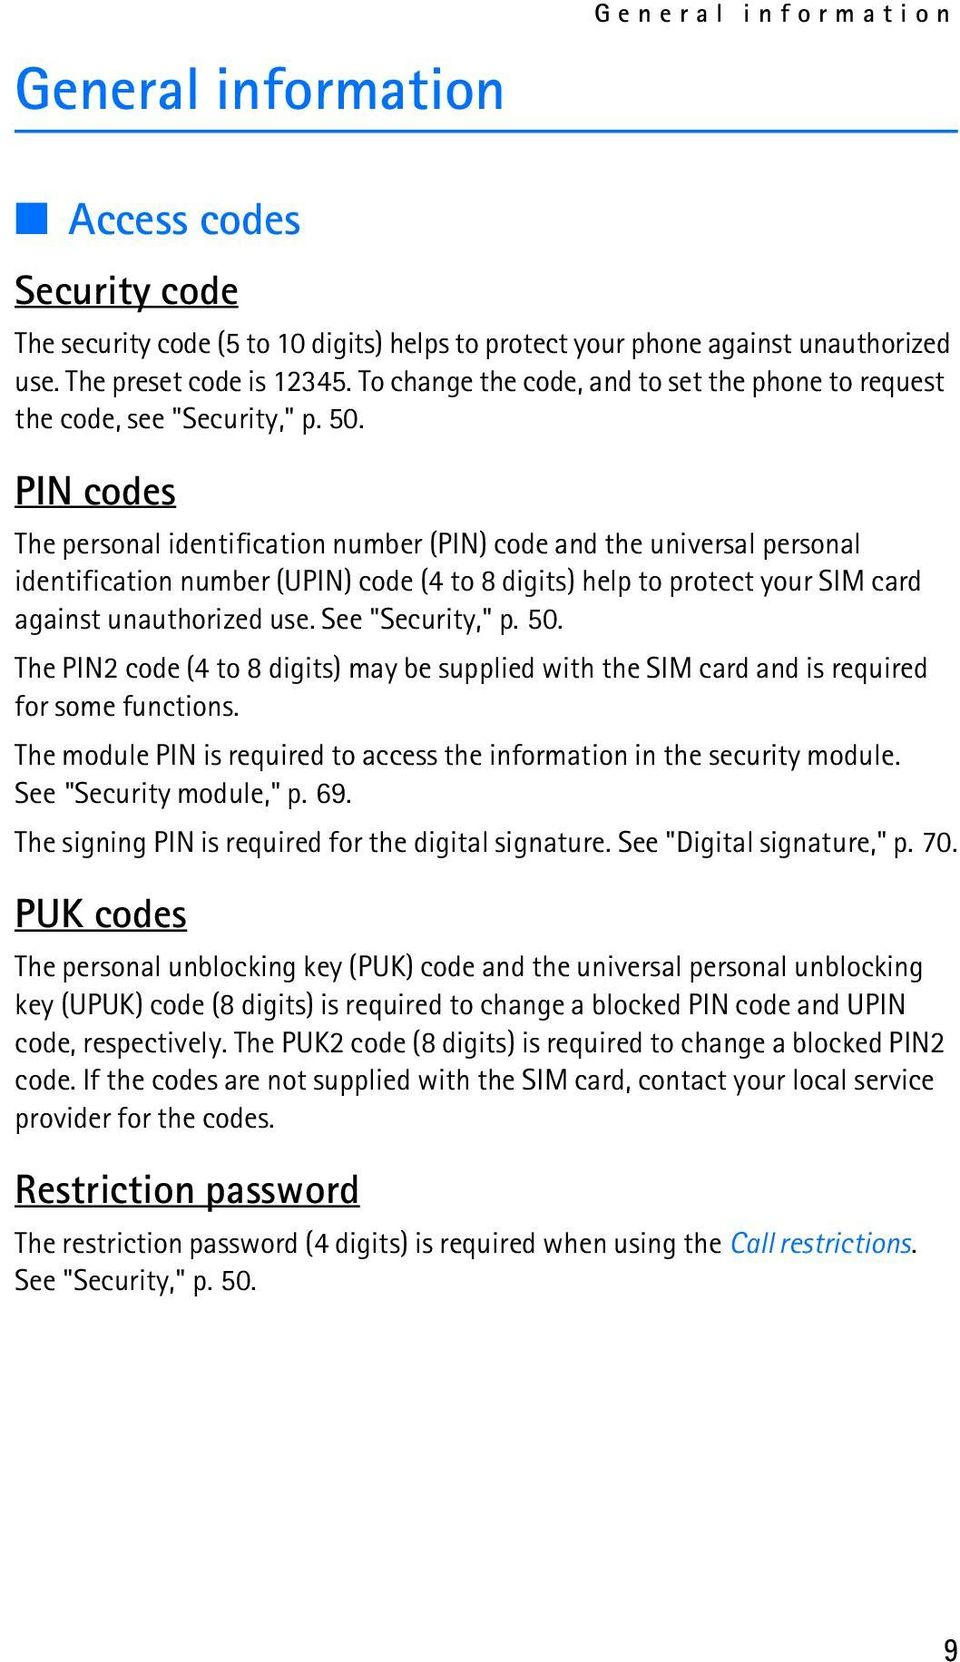 PIN codes The personal identification number (PIN) code and the universal personal identification number (UPIN) code (4 to 8 digits) help to protect your SIM card against unauthorized use.